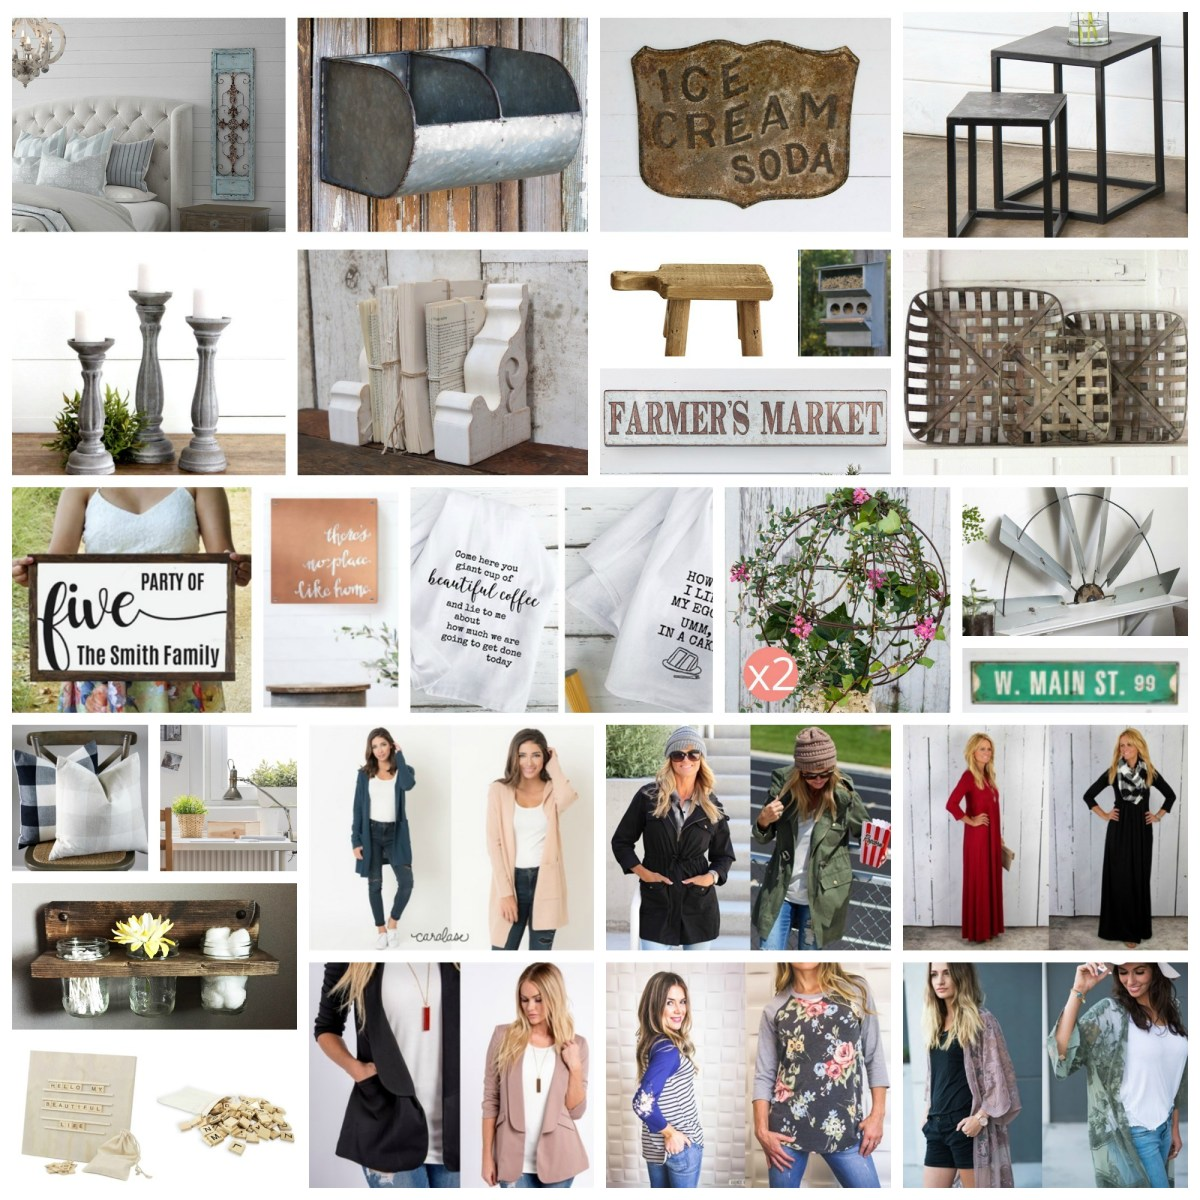 Home Decor Daily Deals: Friday, August 11, 2017